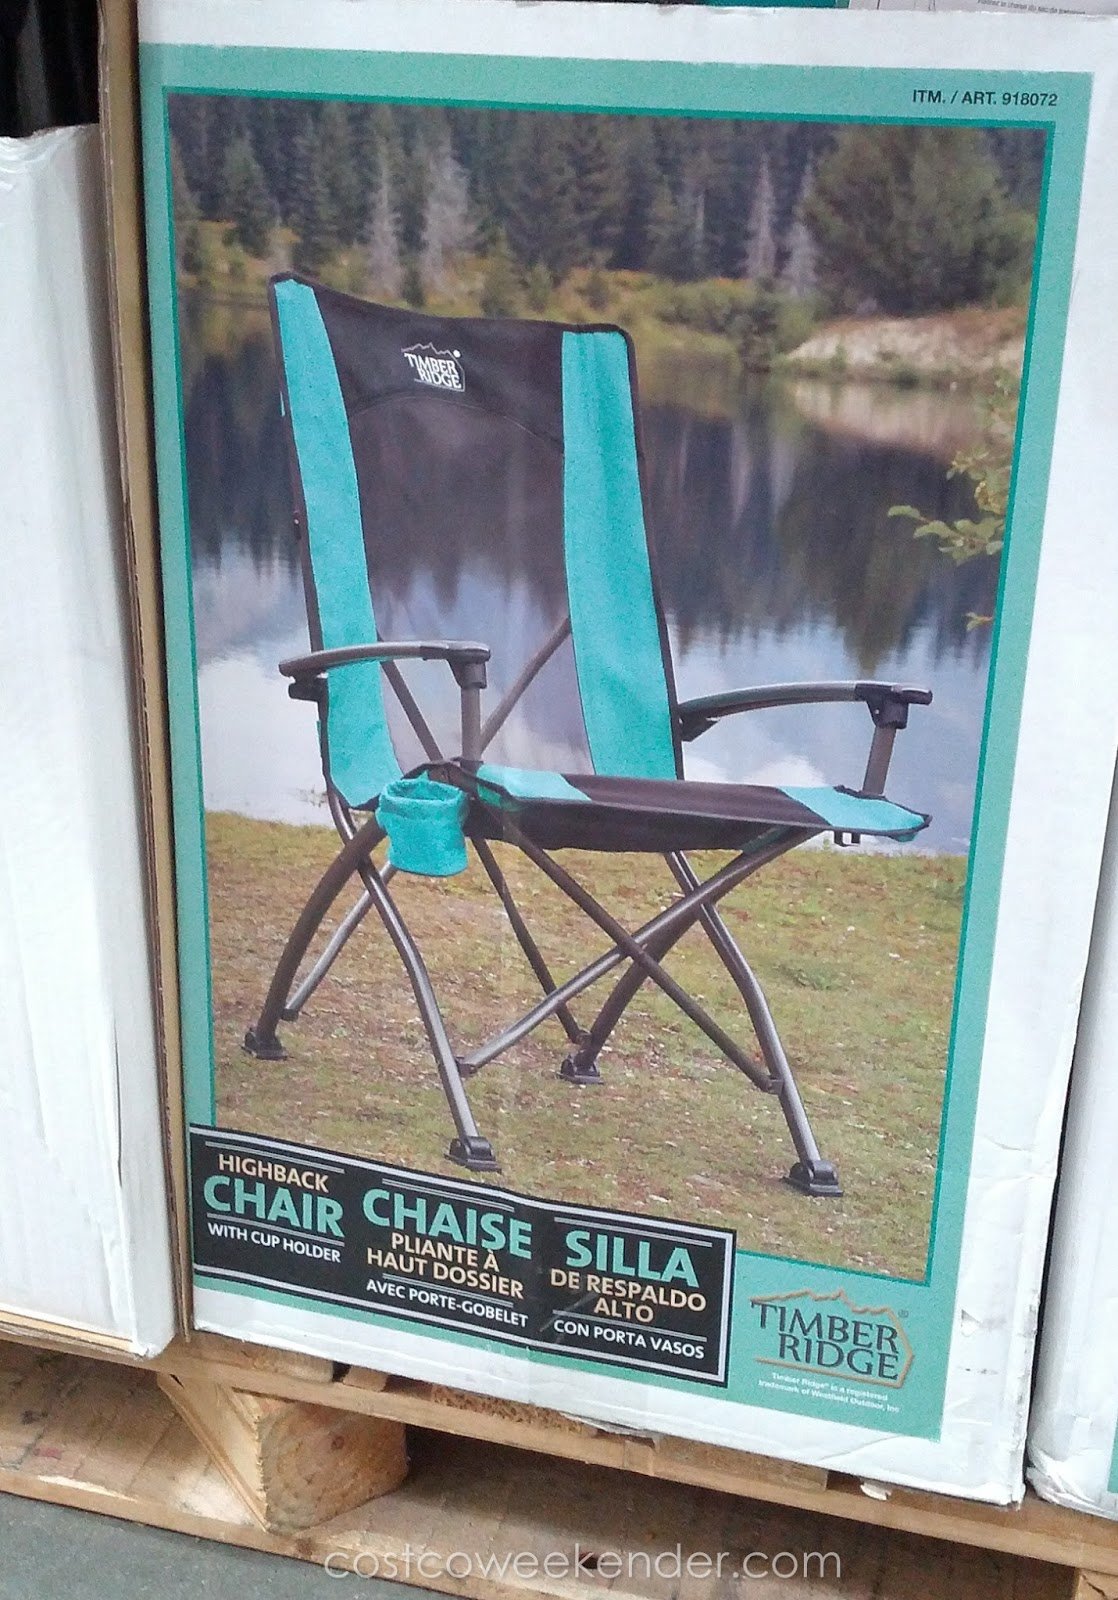 timber ridge outdoor chairs slipcovers for dining uk high back quad chair costco weekender